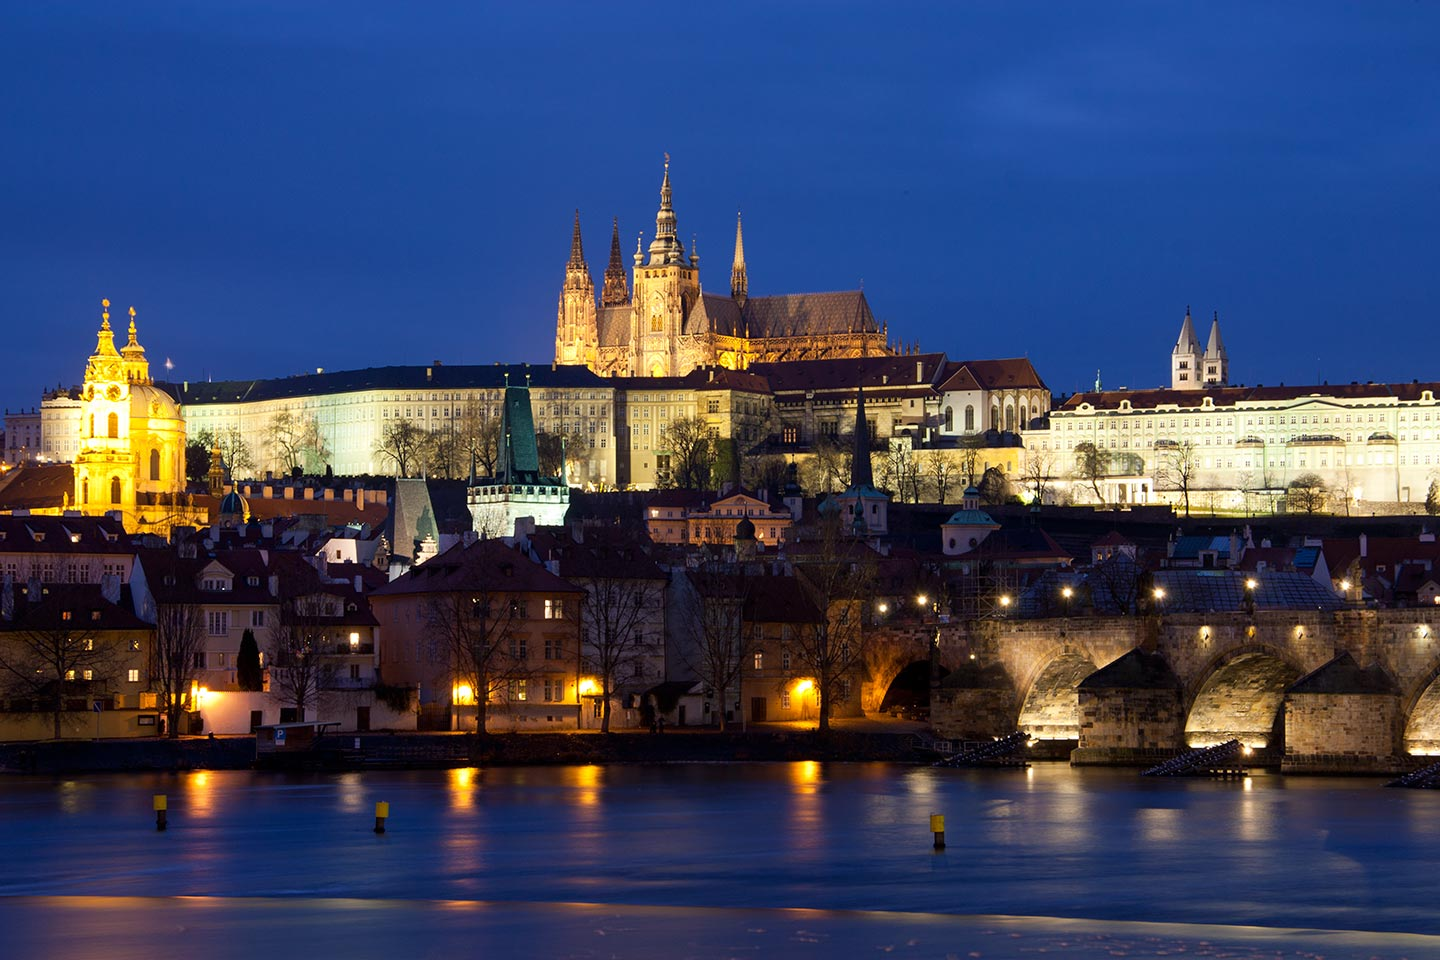 Image of Prague Castle and St Vitus' Cathedral at night